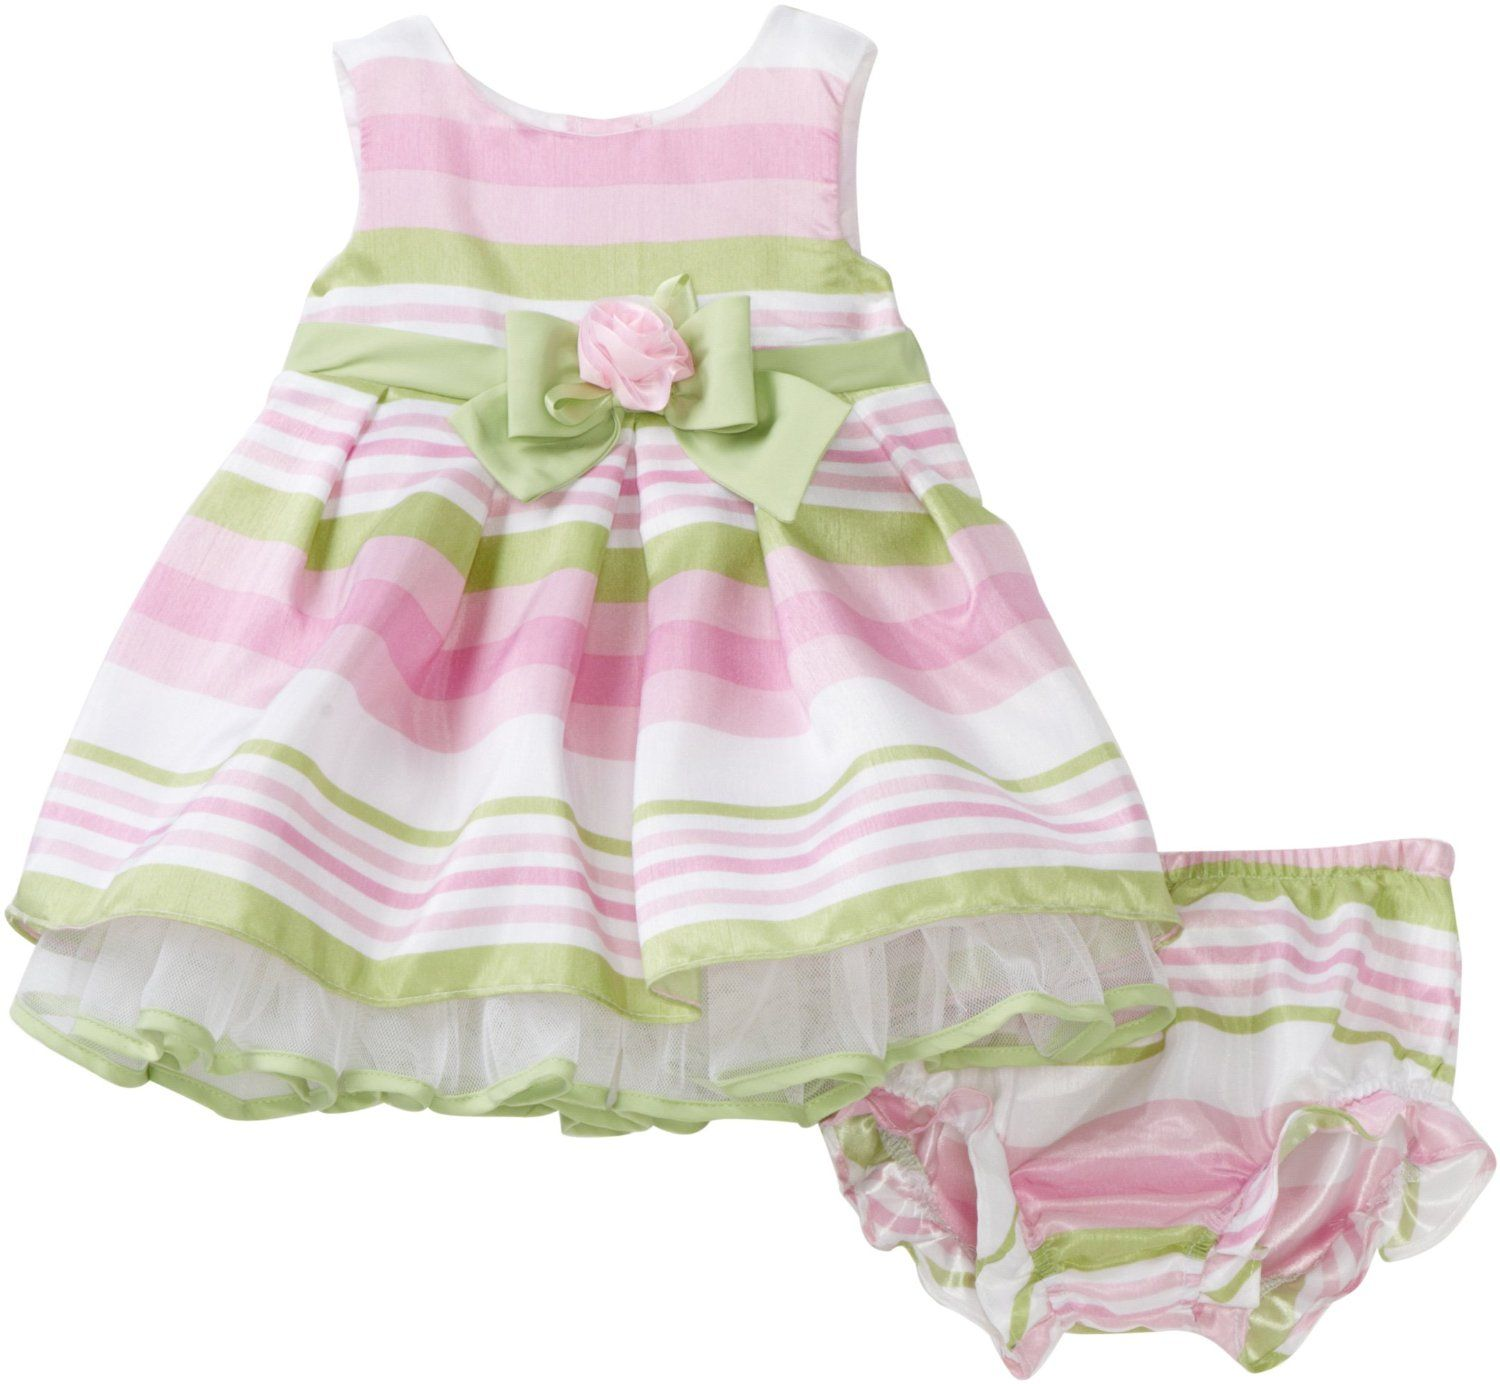 Newborn Baby Girl Dresses Youngland Baby Girls Newborn Two Piece